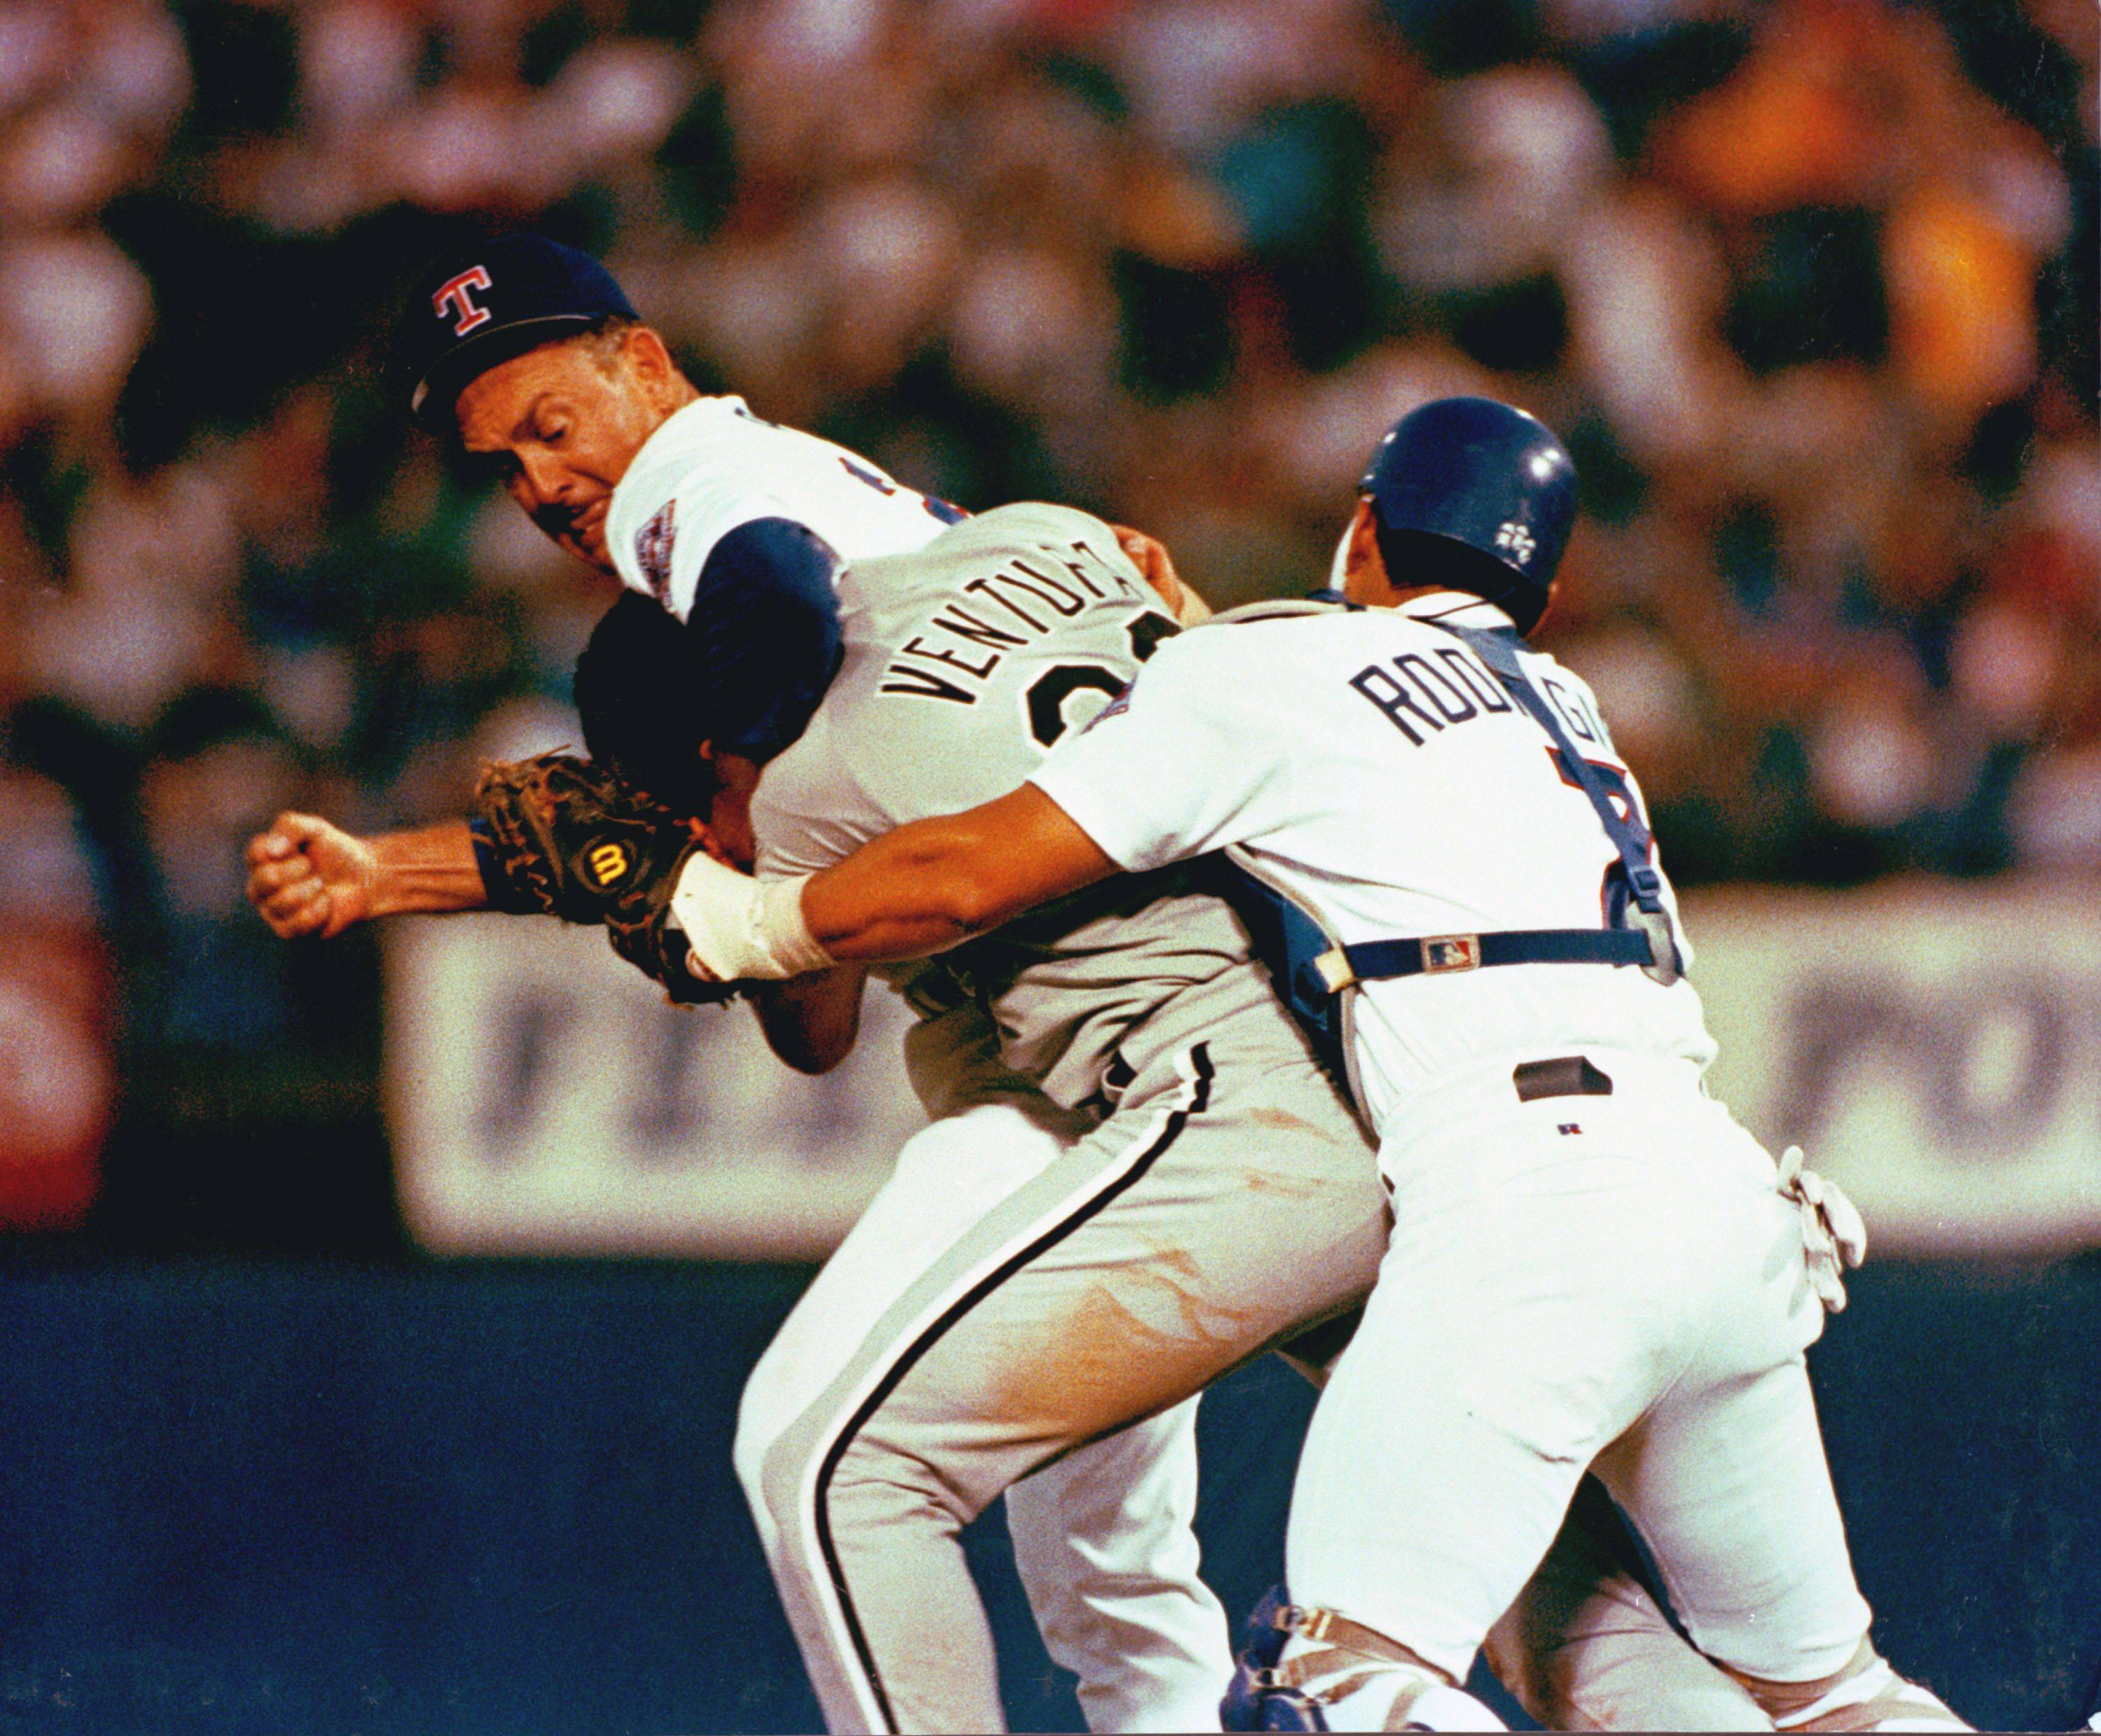 Texas Ranger pitcher Nolan Ryan hits Robin Ventura of the Chicago White Sox after Ventura charged the mound in Arlington, Tex., on Aug. 4, 1993.